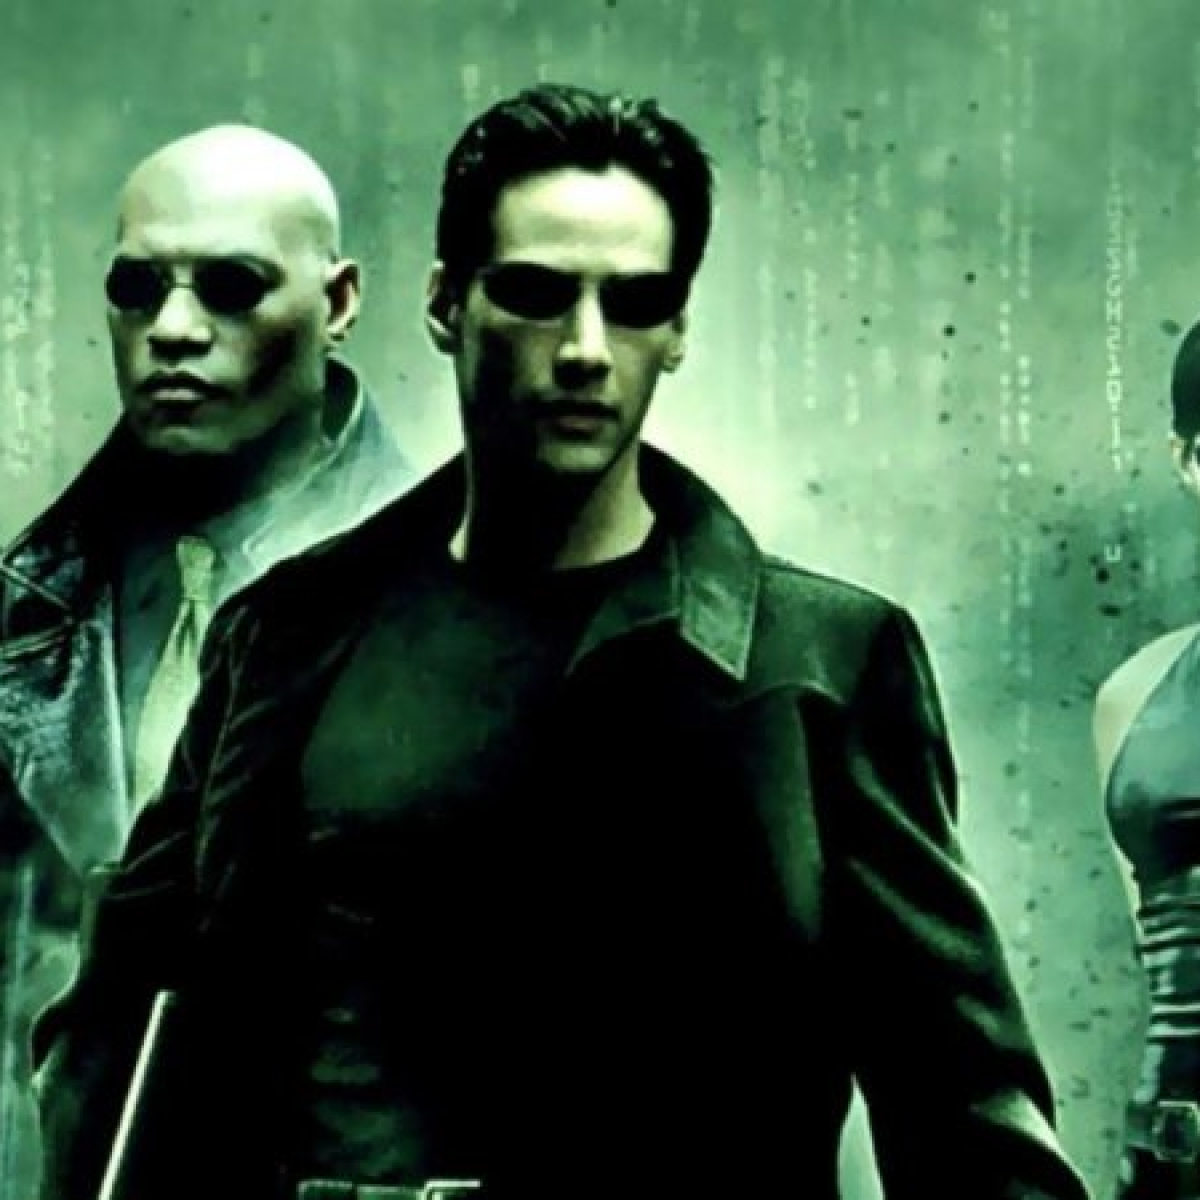 'Matrix 4' release pushed back to April 2022